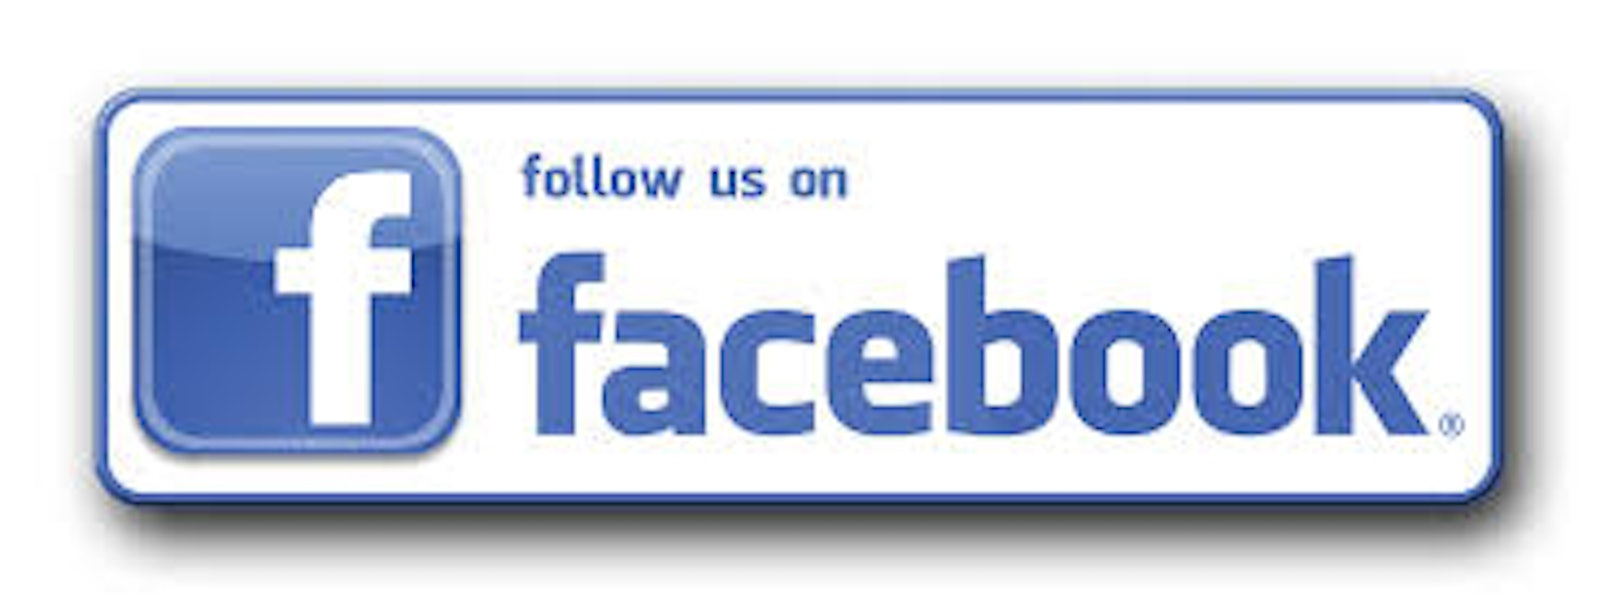 follow on facebook images